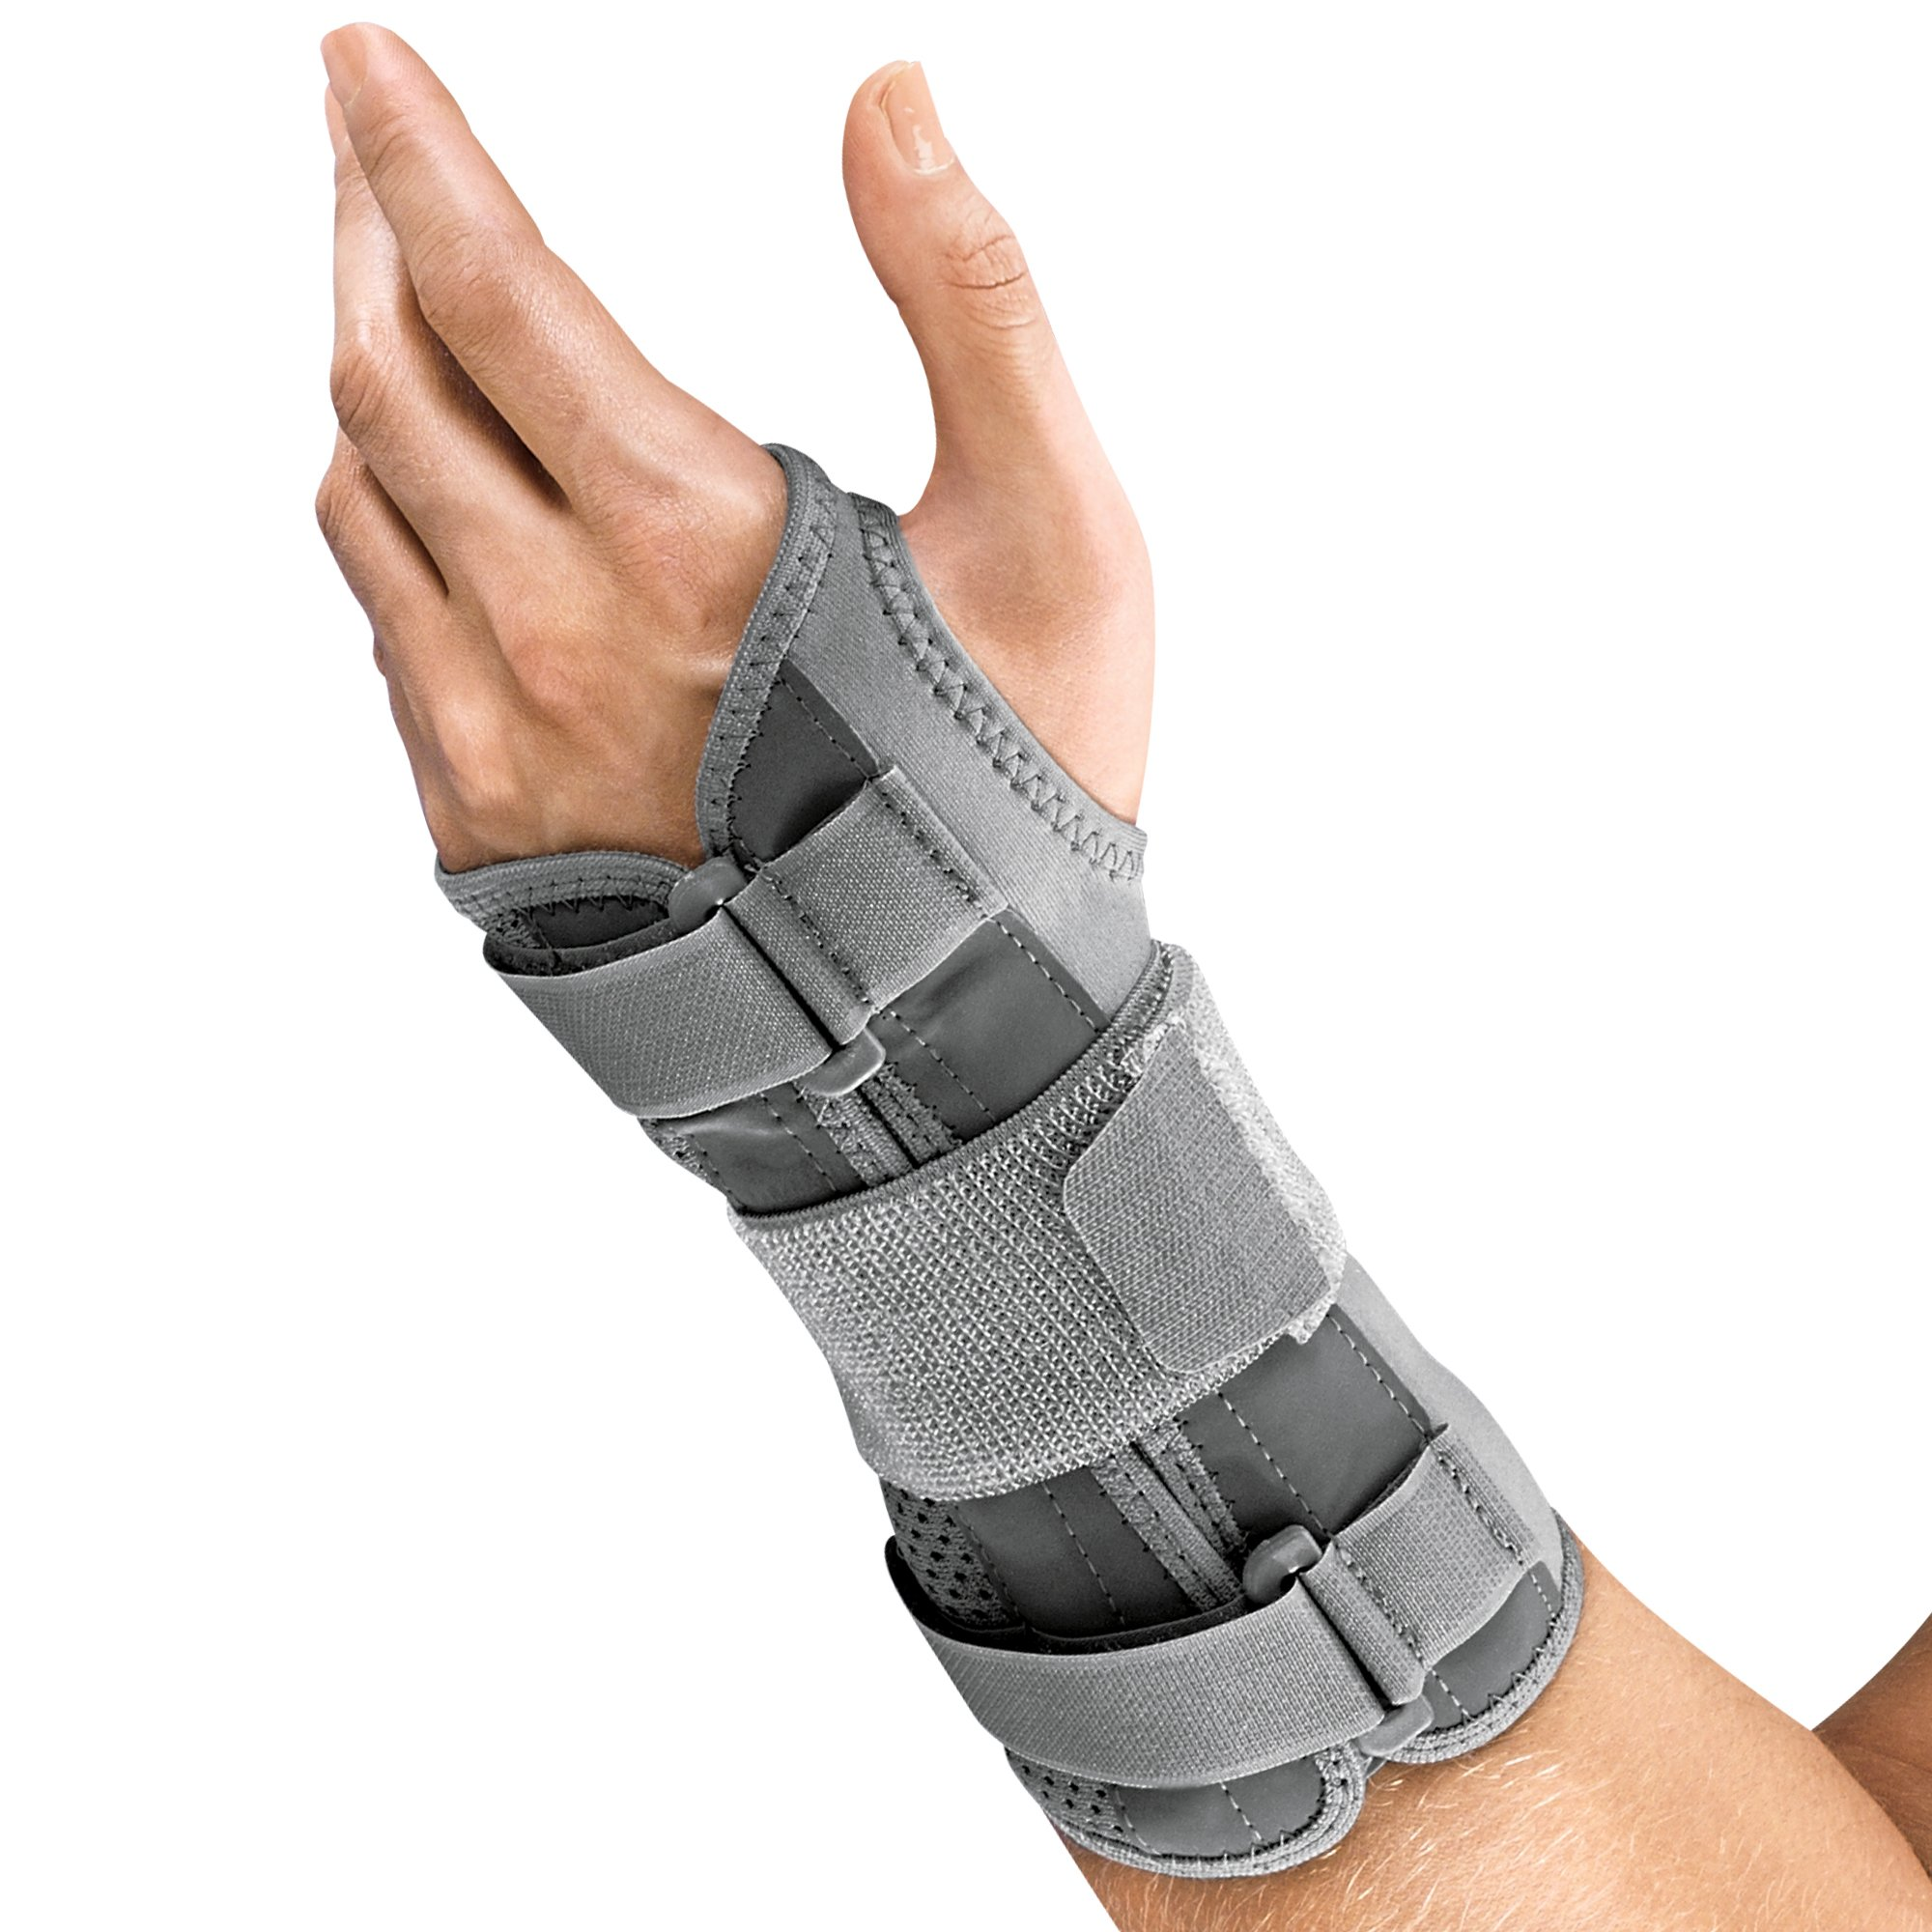 Futuro Deluxe Wrist Stabilizer, Eases Symptoms of Carpal Tunnel Syndrome, Improves Stability, Firm Stabilizing Support, Right Hand, Small/Medium, Gray